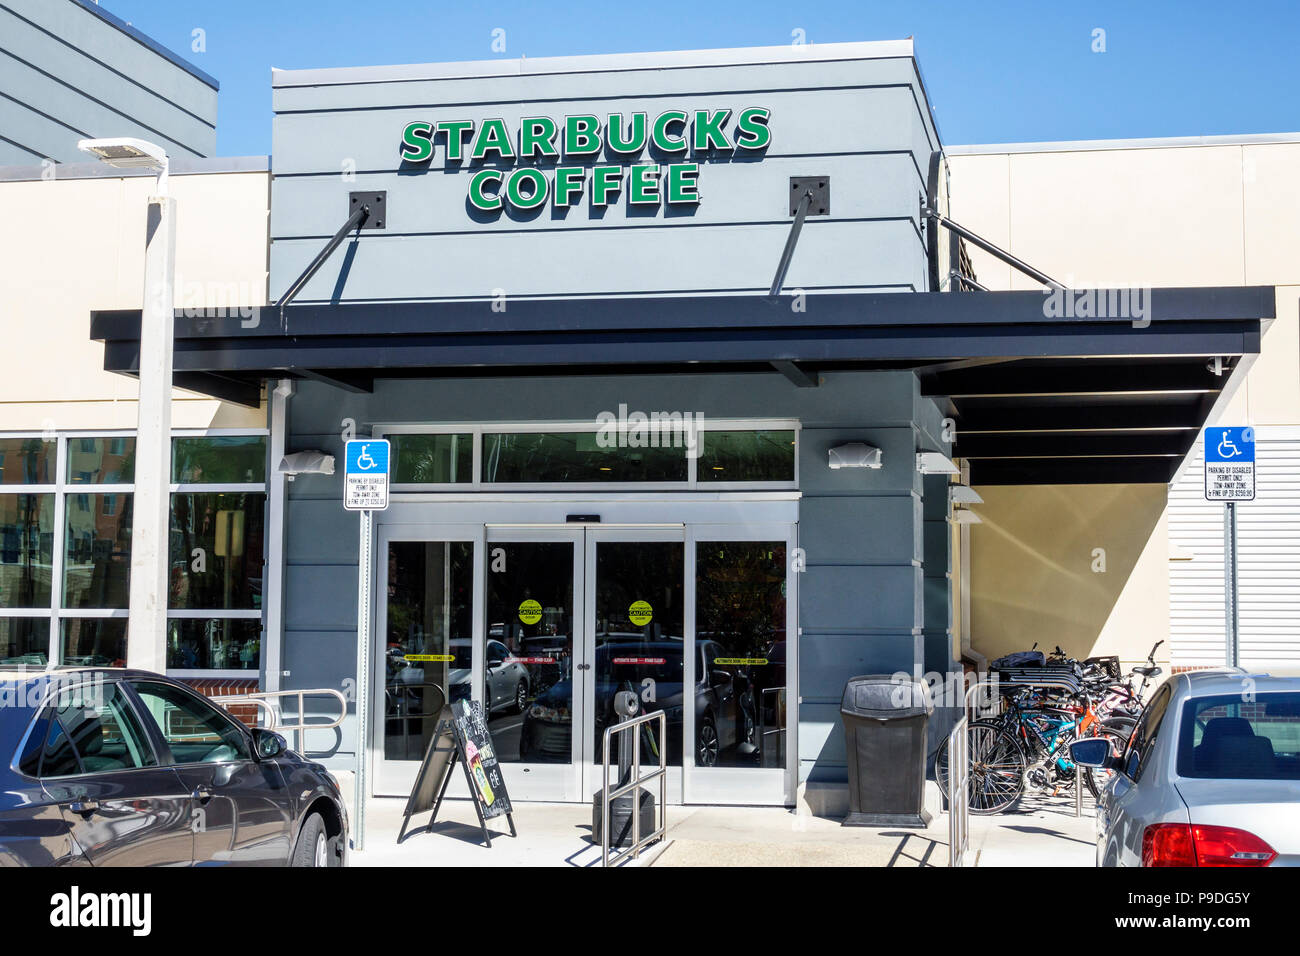 Florida Gainesville Starbucks Coffee coffeehouse front entrance exterior disabled parking space - Stock Image